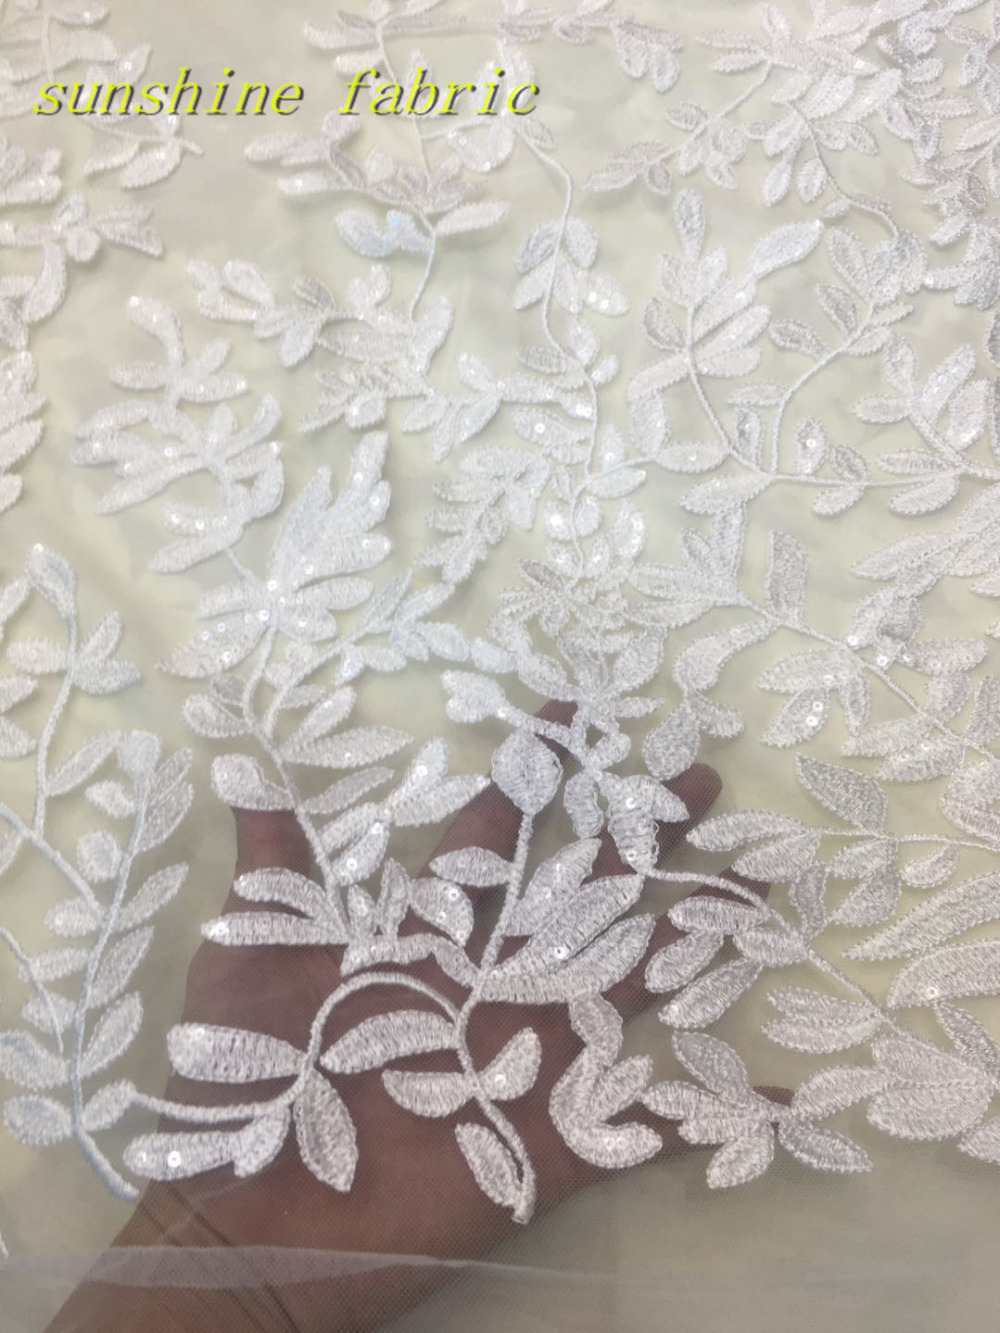 French Net Lace Fabric 2018 Latest african guipure lace fabric with embroidery  mesh tulle white cord 87cffcfa6c20